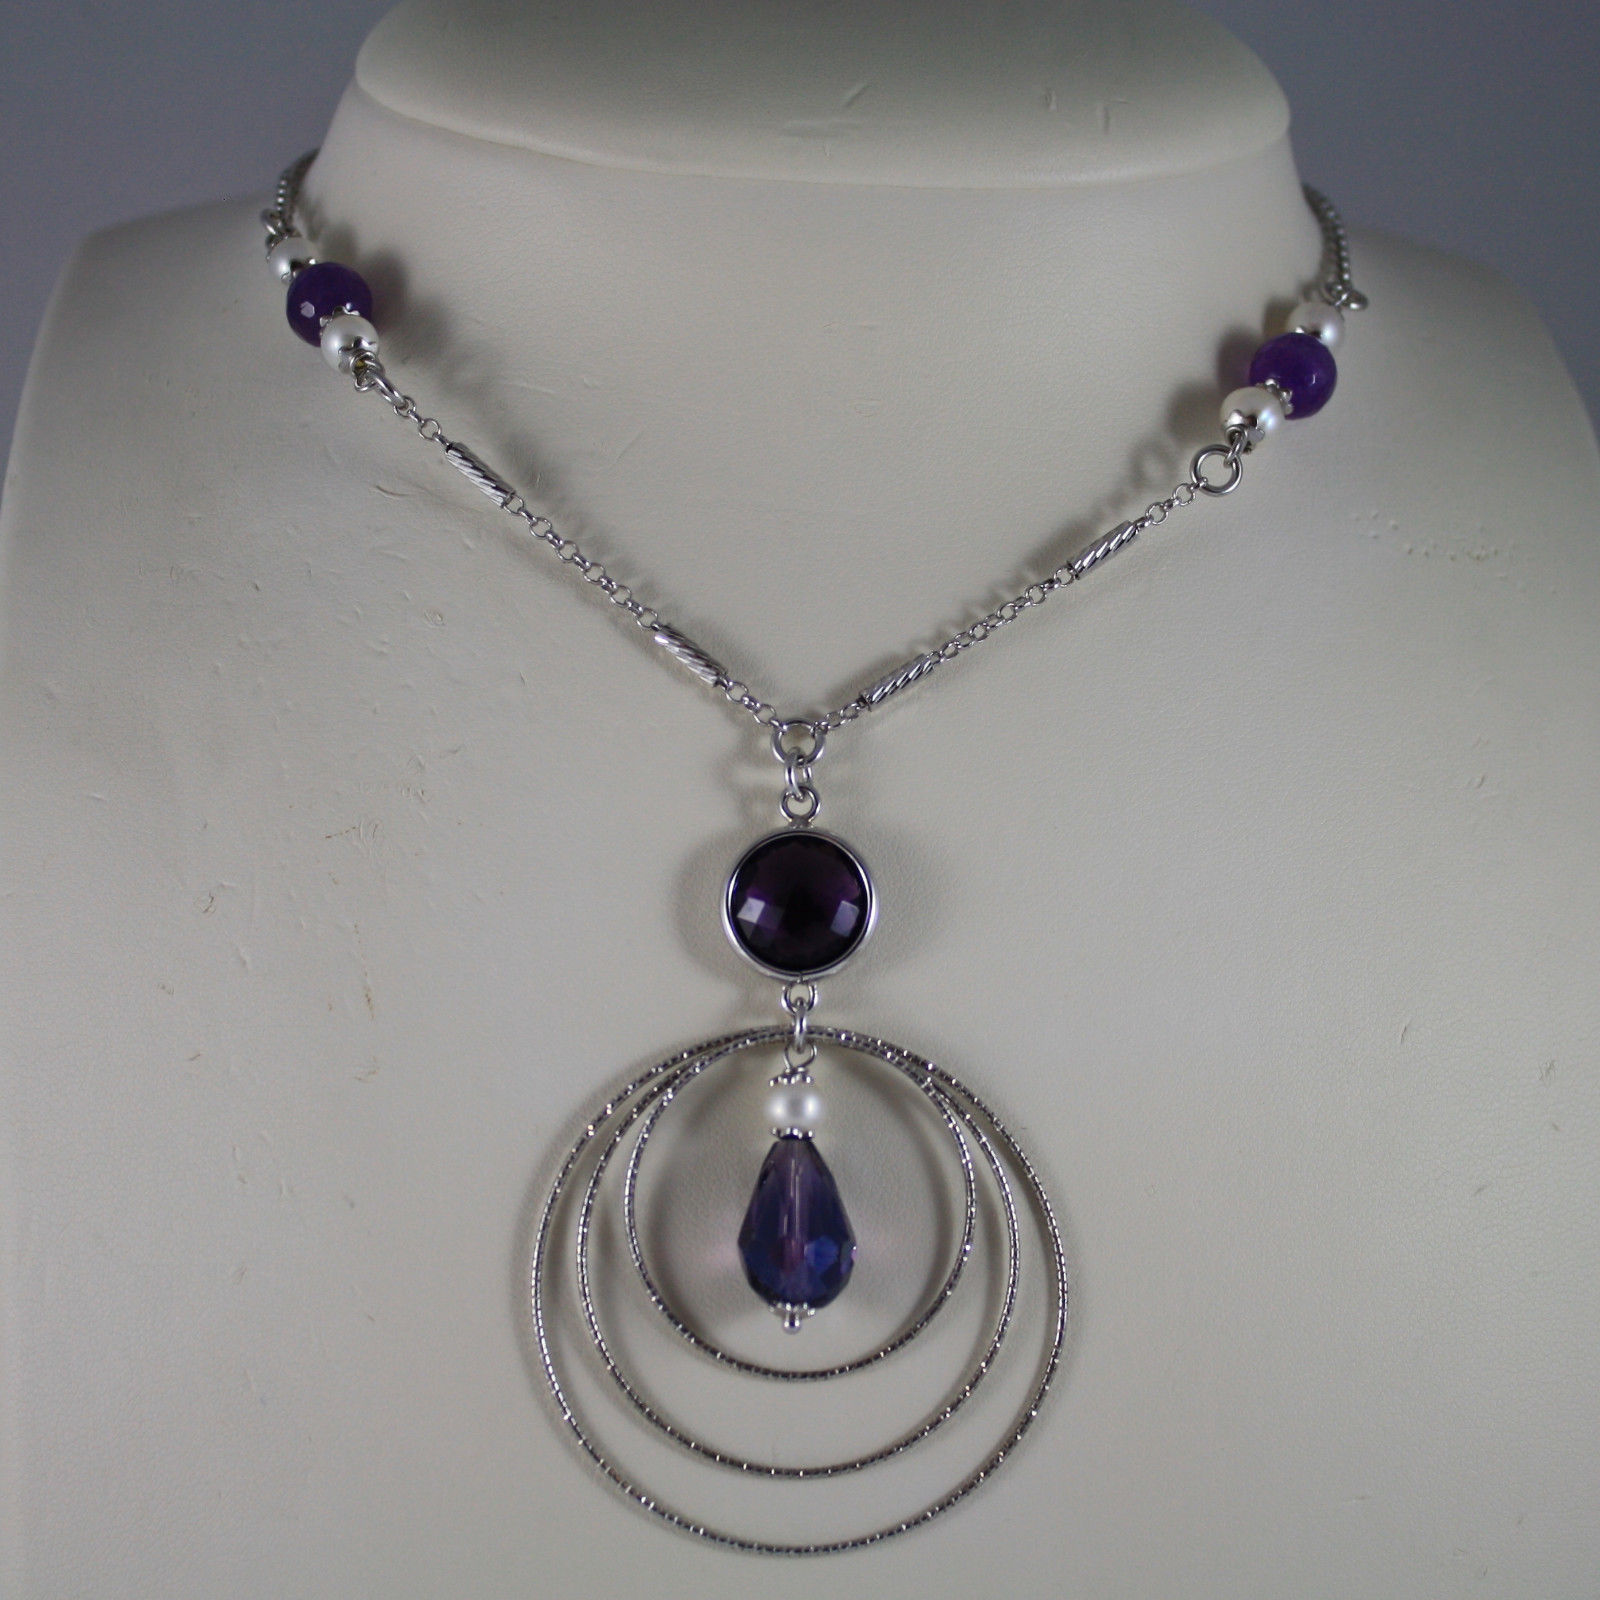 .925 SILVER RHODIUM NECKLACE WITH PURPLE CRYSTALS, WHITE PEARLS AND AMETHYST